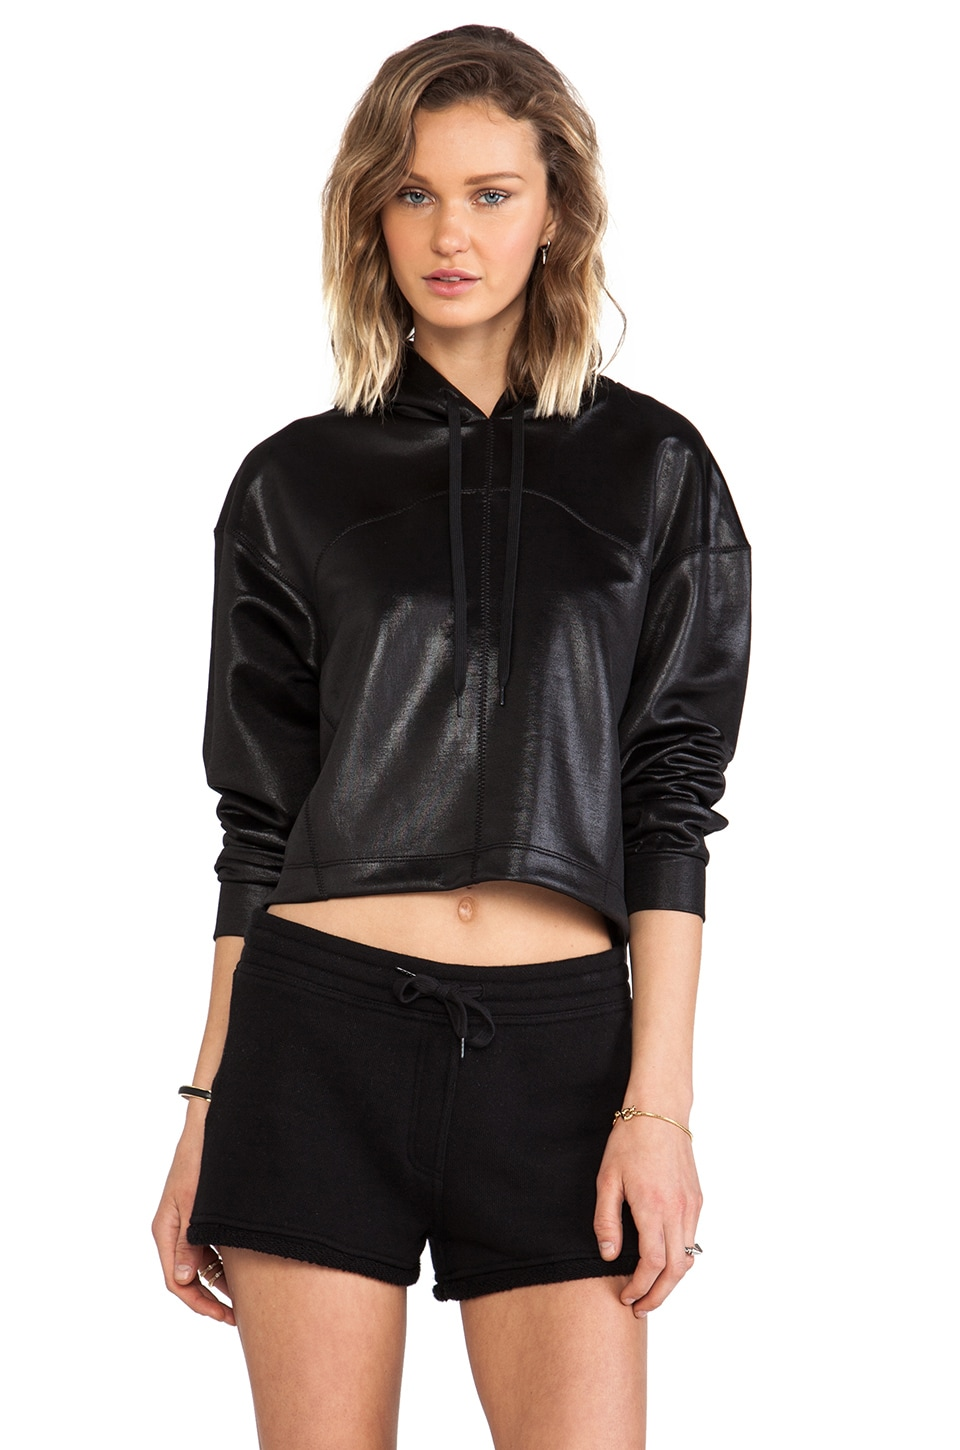 T by Alexander Wang Shiny Boxy Cropped Hoodie in Black